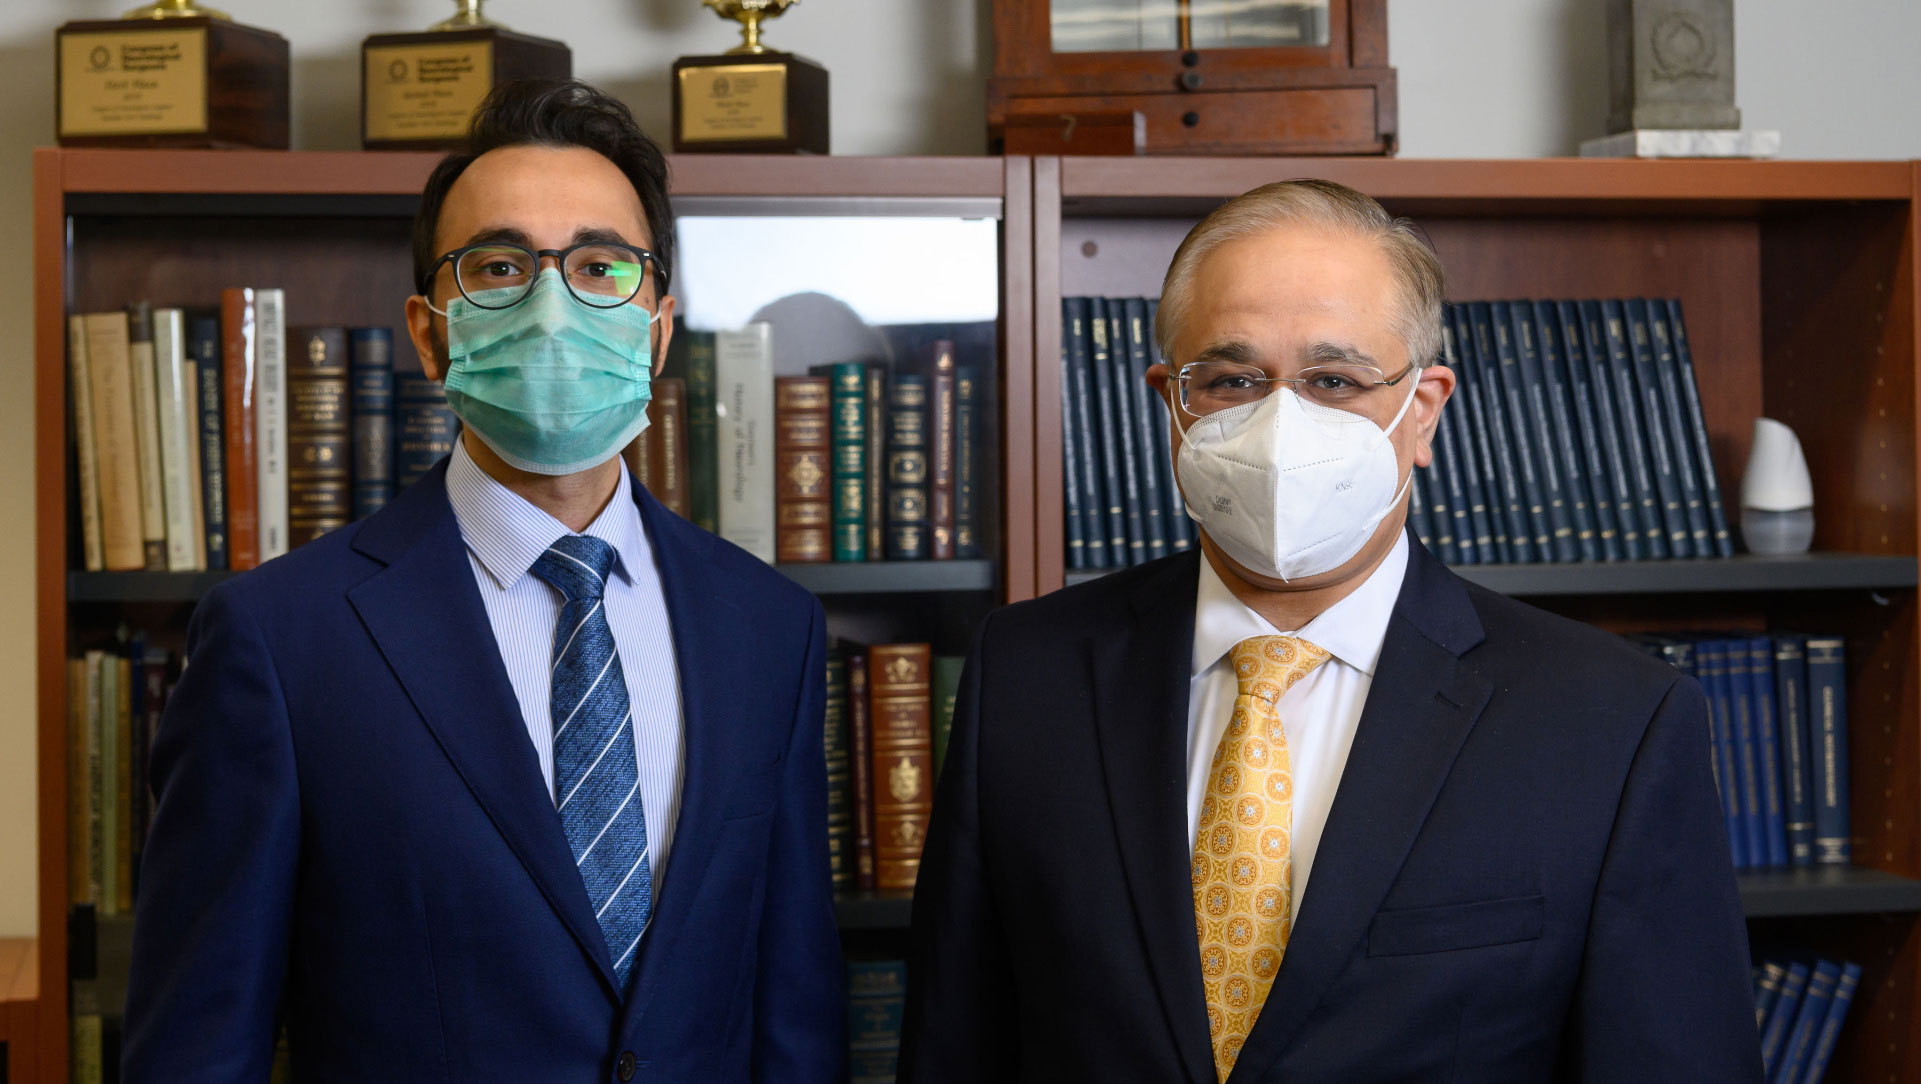 Dr. Farhan Mirza (left), a younger man with dark hair and a beard with glasses, and Dr. Siddharth Kapoor (right), a middle aged man with glasses, both dressed in suit jackets and ties with face masks on standing side by side in front of a bookshelf.